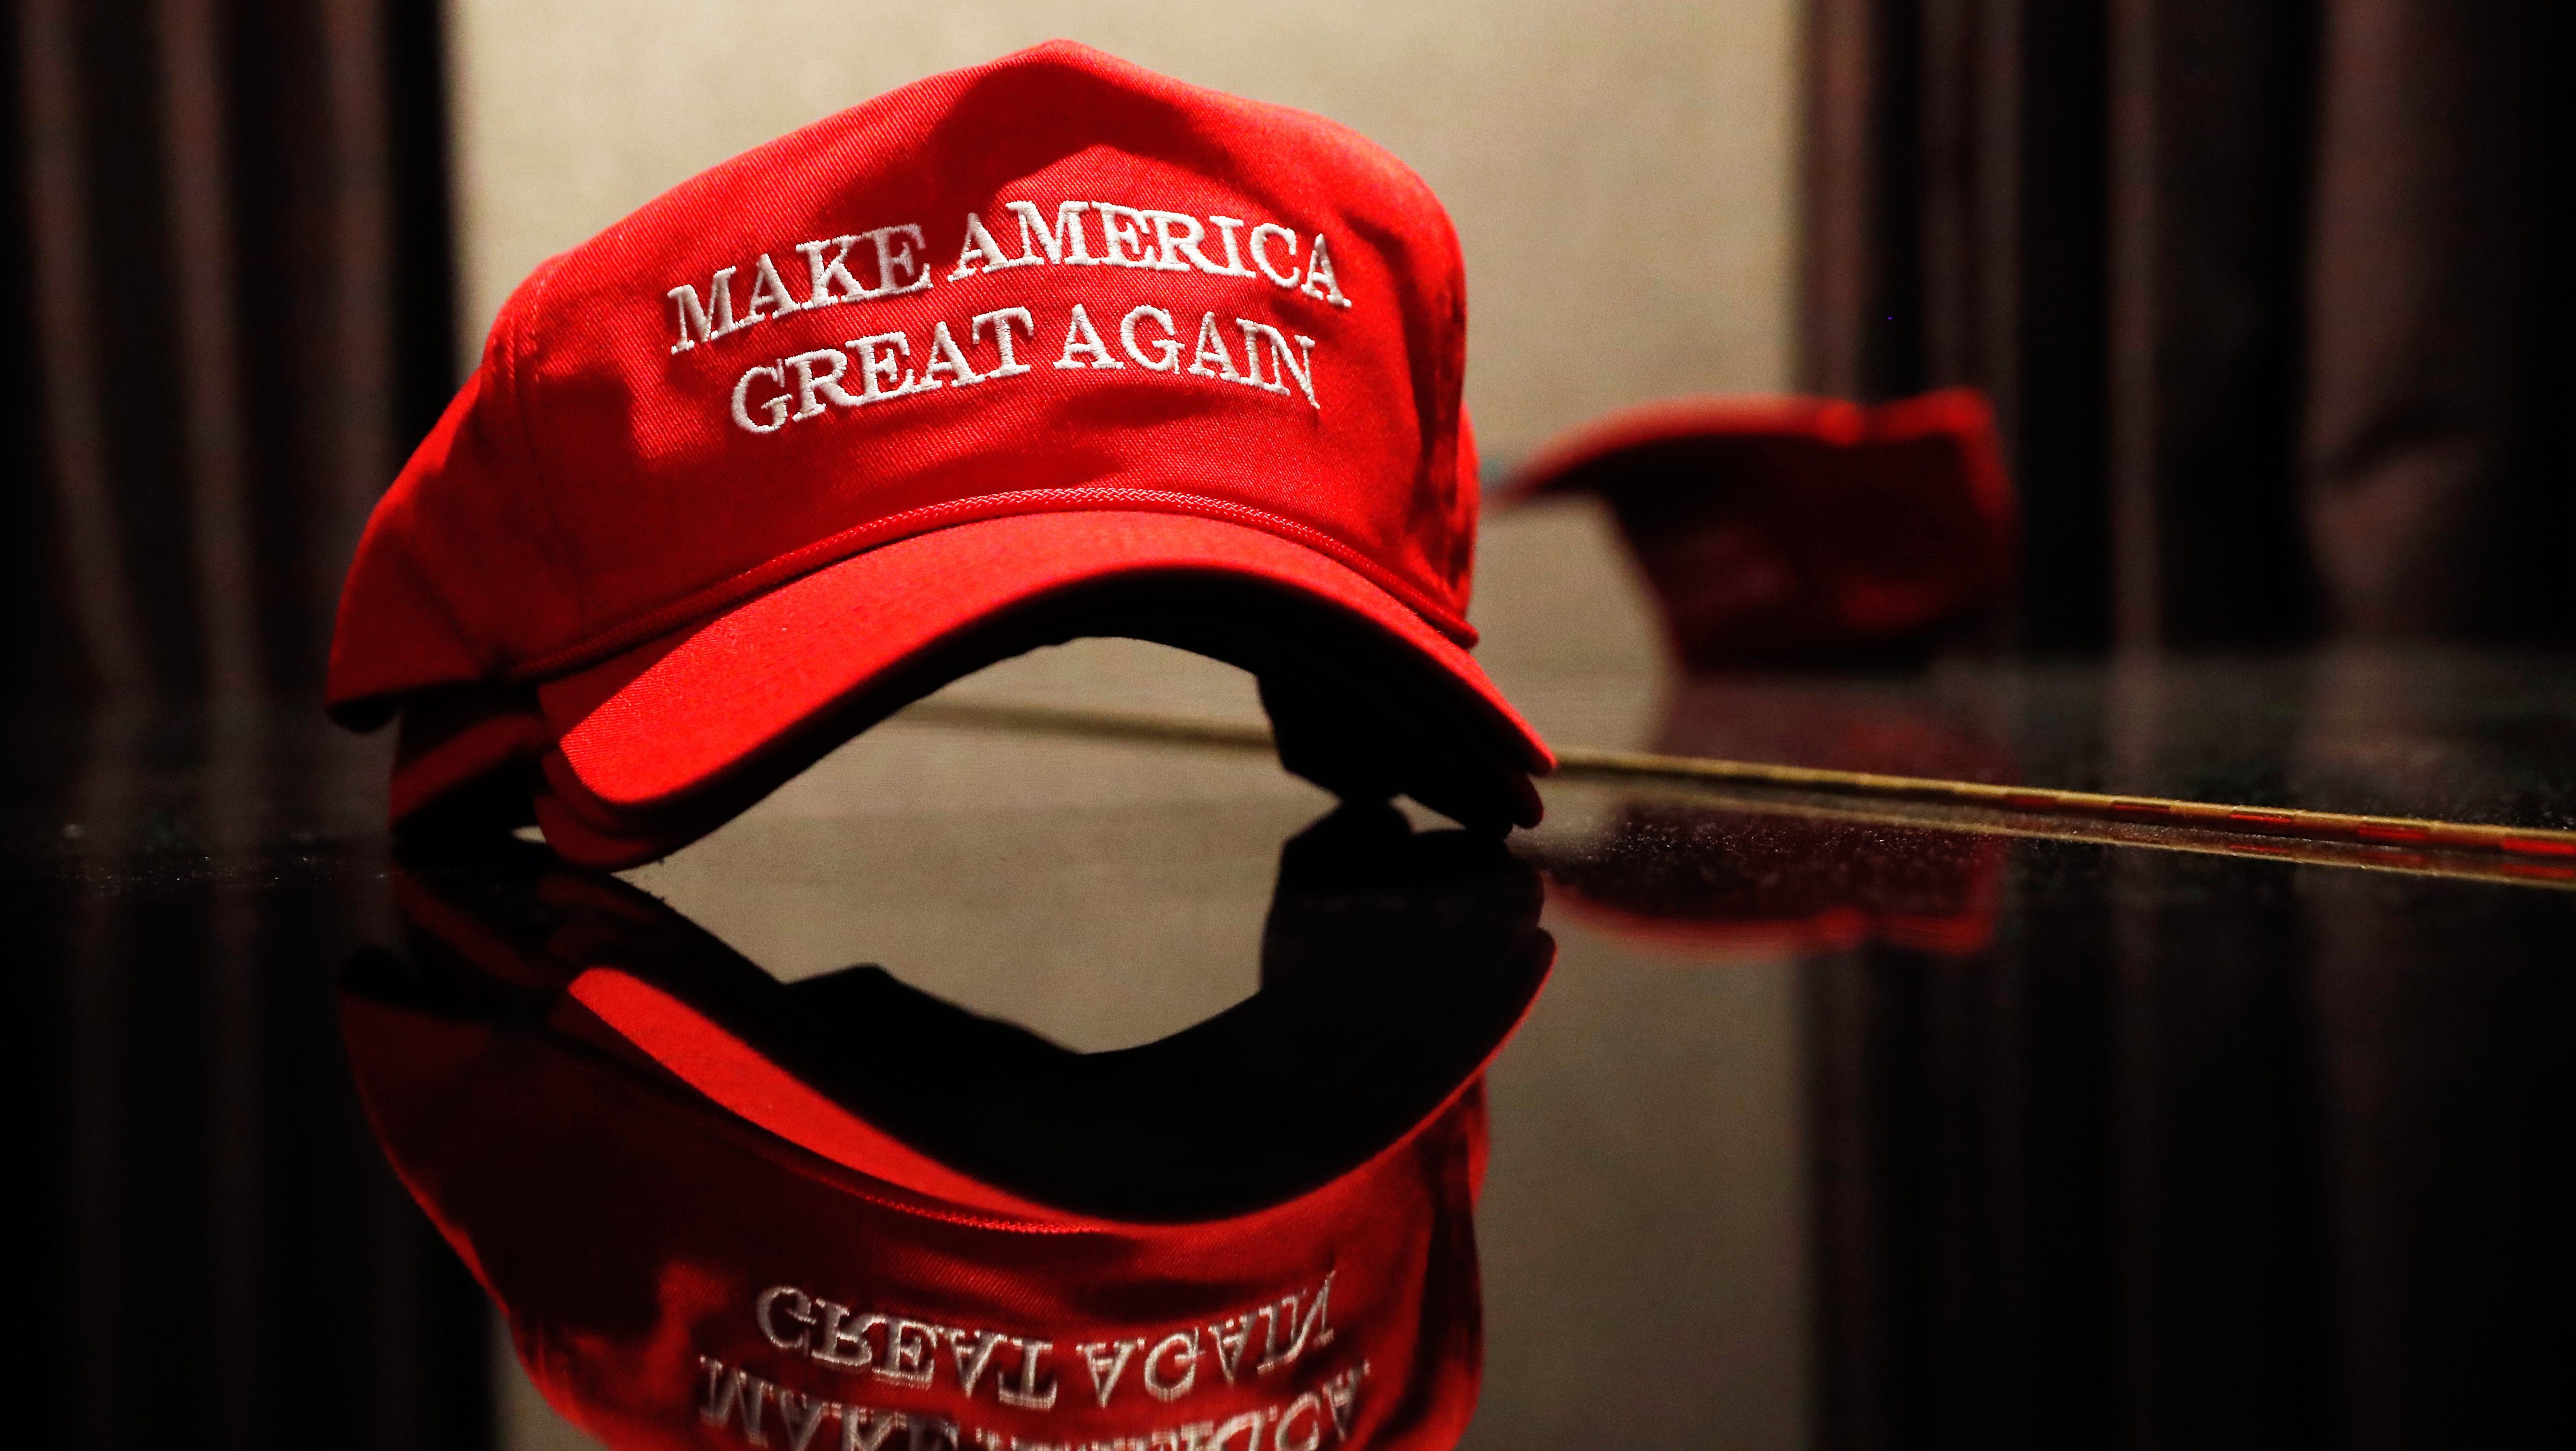 A Trump hat sits on a table outside of the rally for Republican U.S. presidential nominee Donald Trump in New York City, New York, U.S. November 8, 2016. REUTERS/Andrew Kelly  - RTX2SNXM